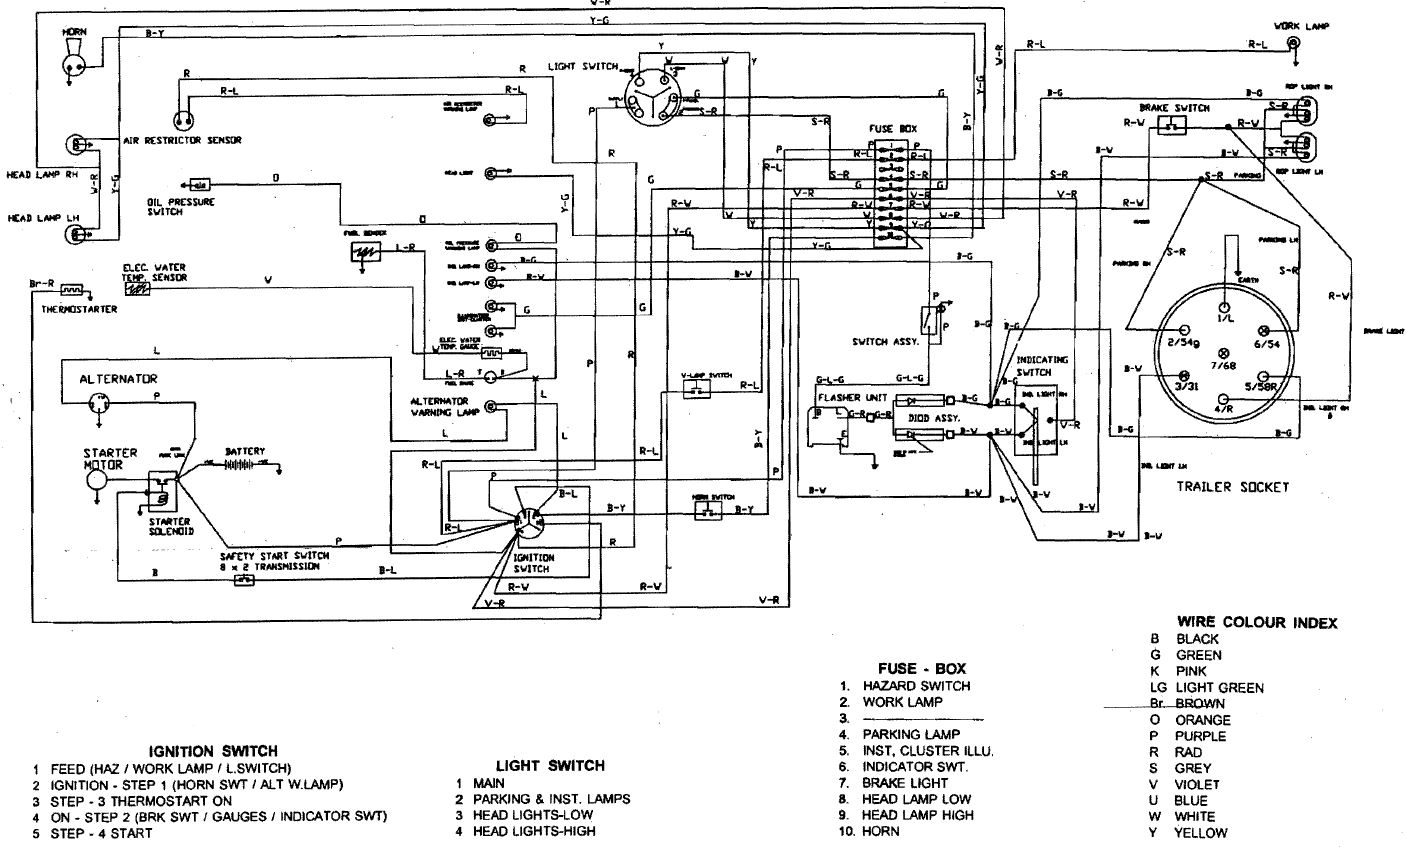 20158463319_b82d524c3d_o ignition switch wiring diagram john deere ignition wiring diagram at bayanpartner.co